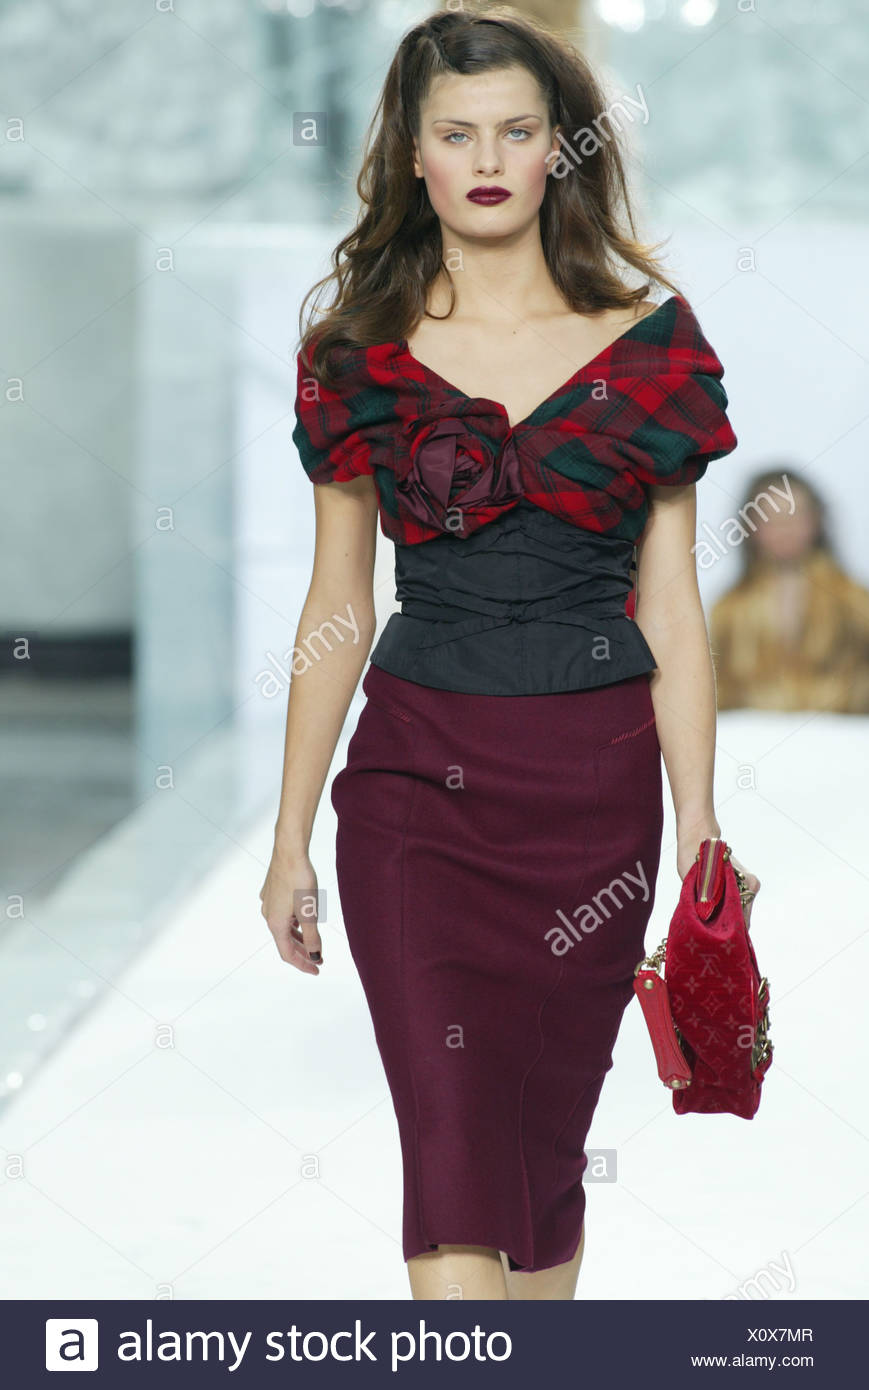 ca5fadbd906a9d Model long brunette hair wearing black off the shoulder top red and green  tartan sleeves and burgundy fabric flower, wearing